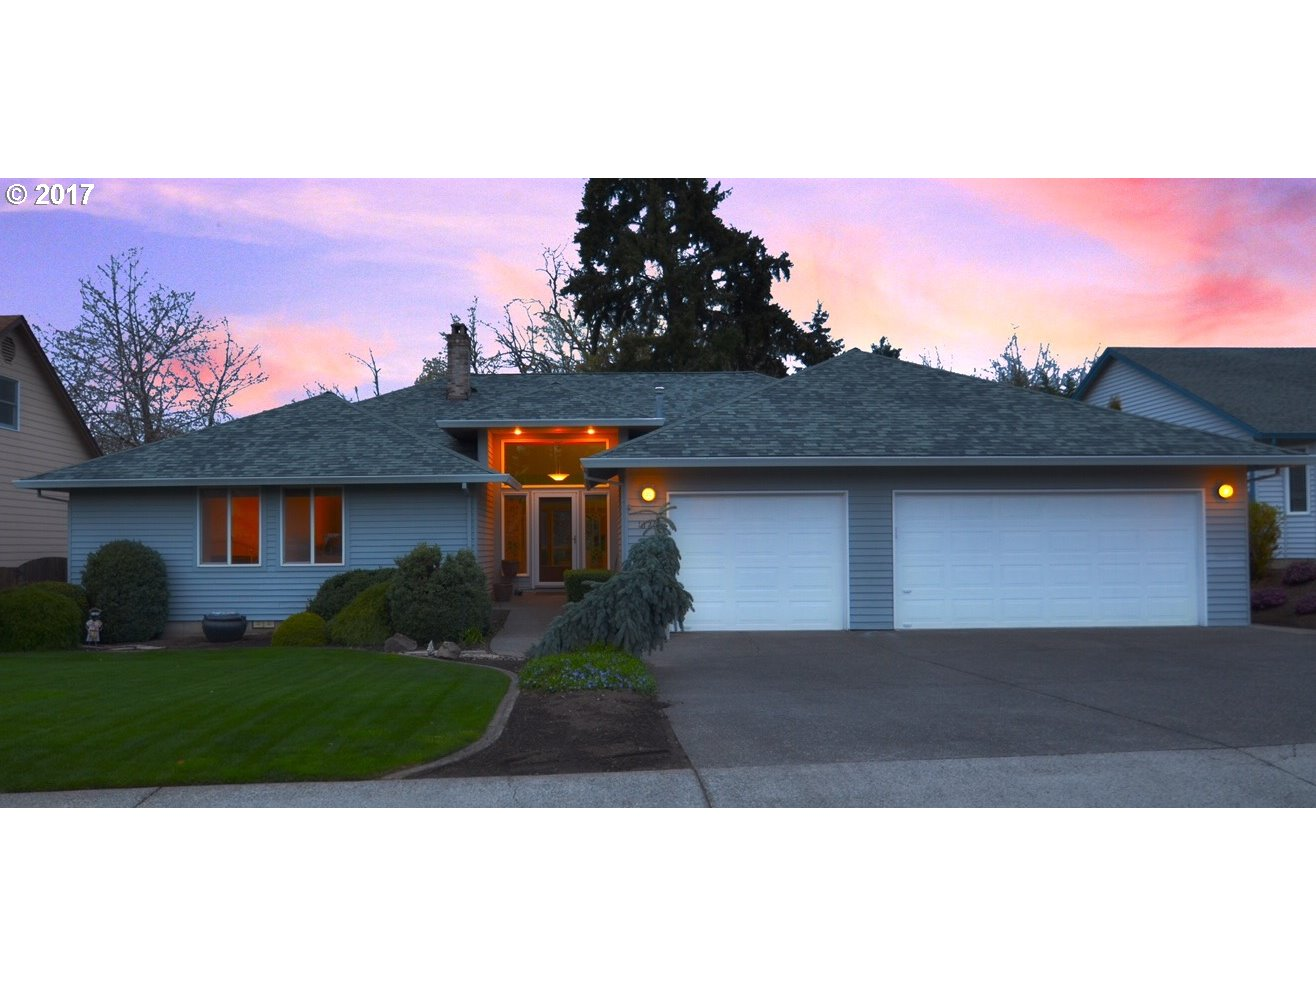 1620 NW 137TH ST, Vancouver, WA 98685